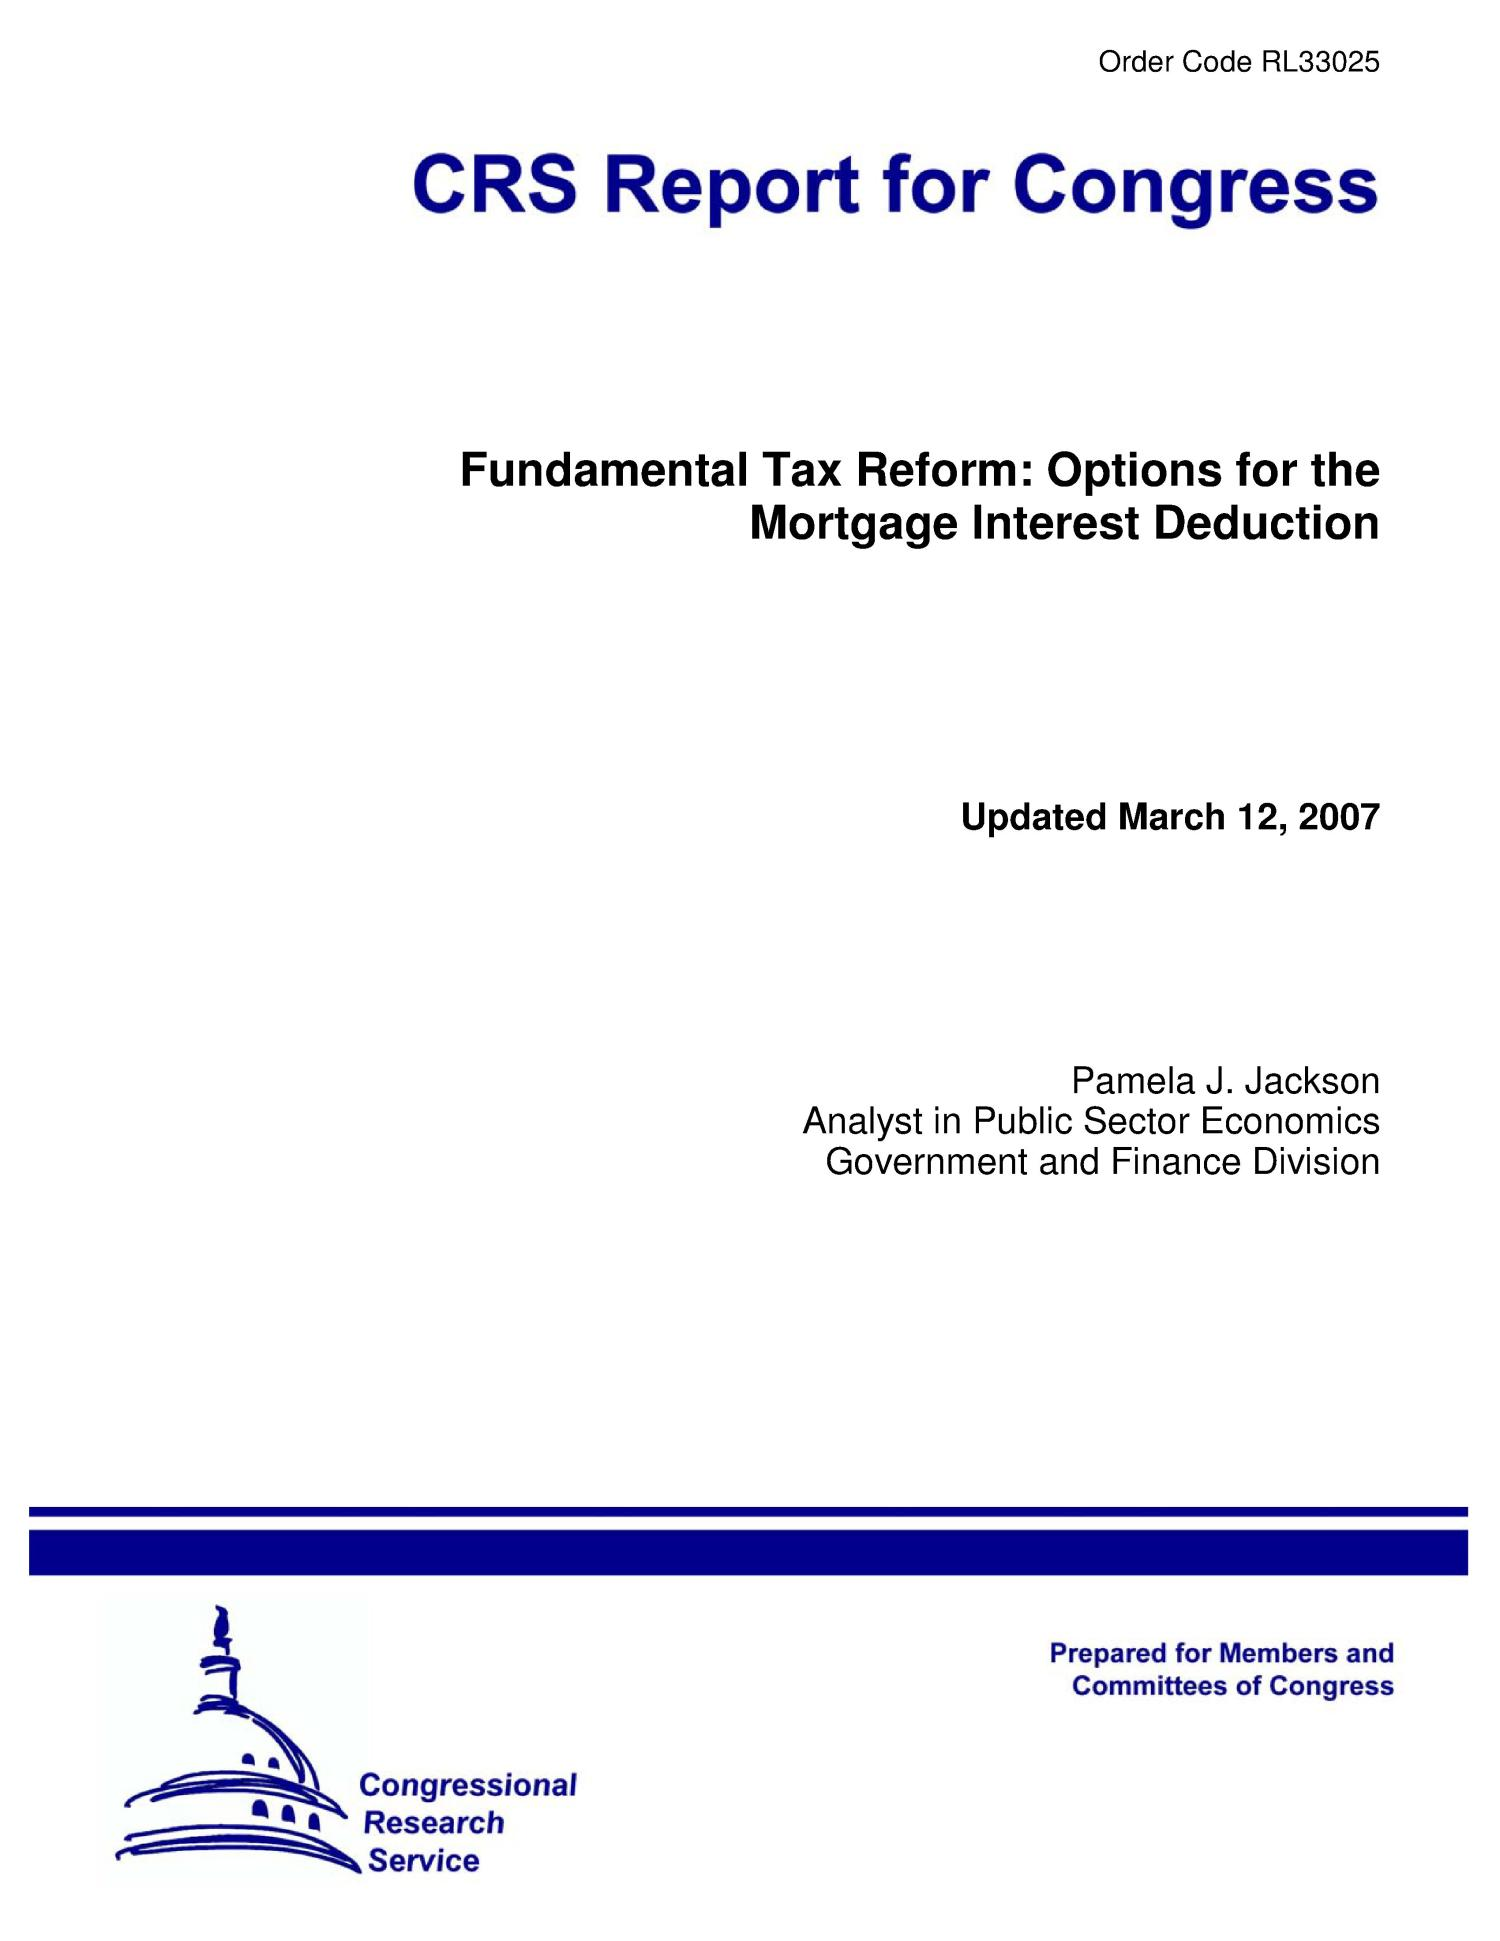 Fundamental Tax Reform Options For The Mortgage Interest Deduction